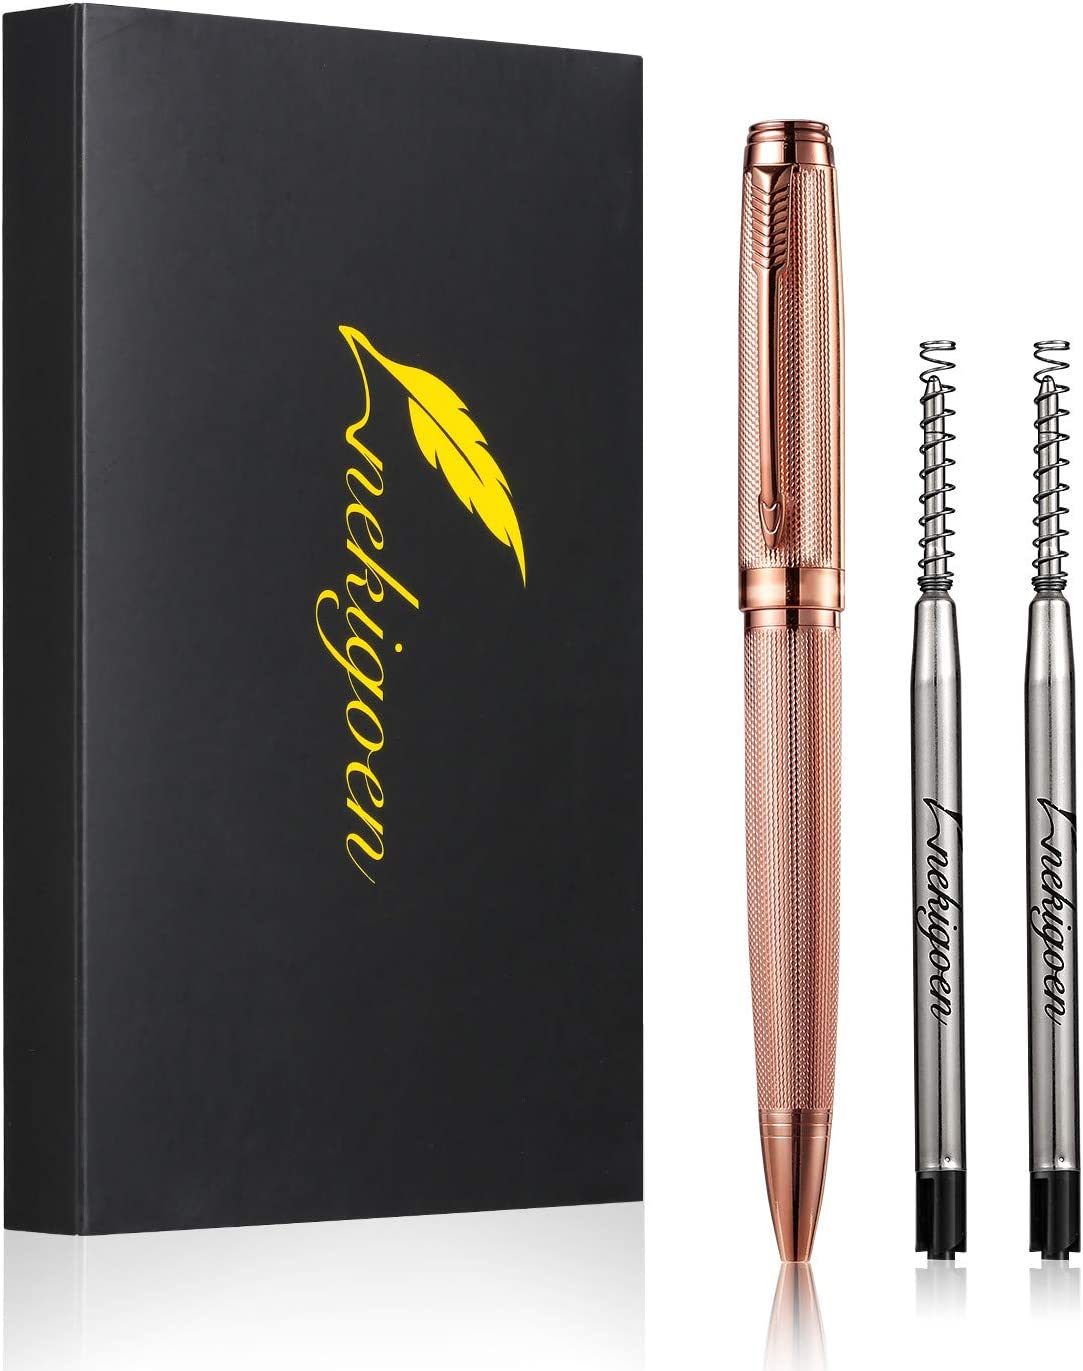 Top 15 Best Pens For Gift (Gift Pen Review For 2021) 3